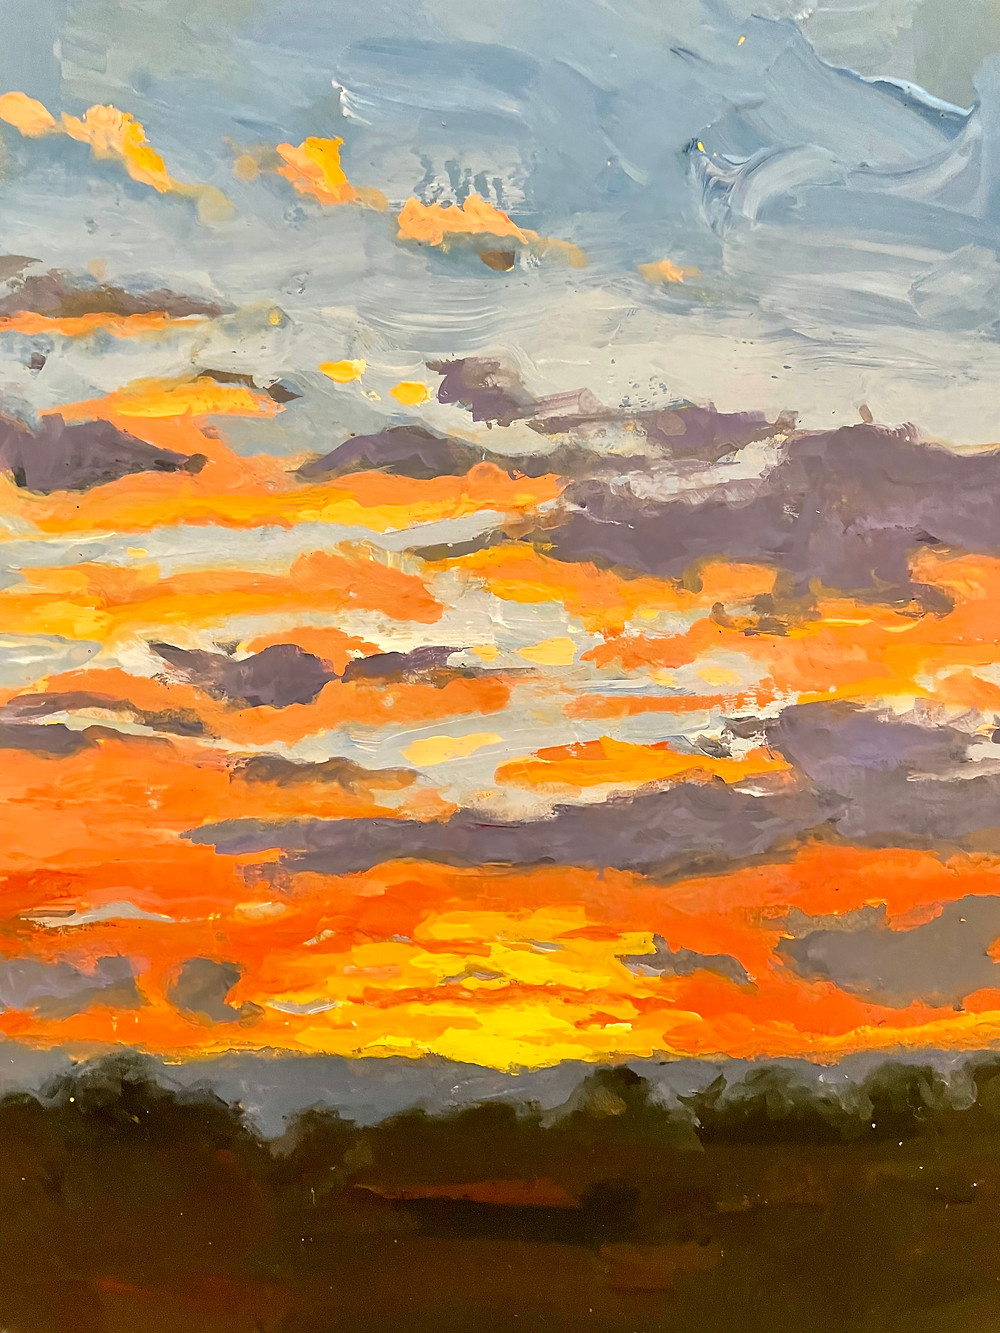 Gouache painting of a sunset with red and orange sky purple clouds over a dark landscape